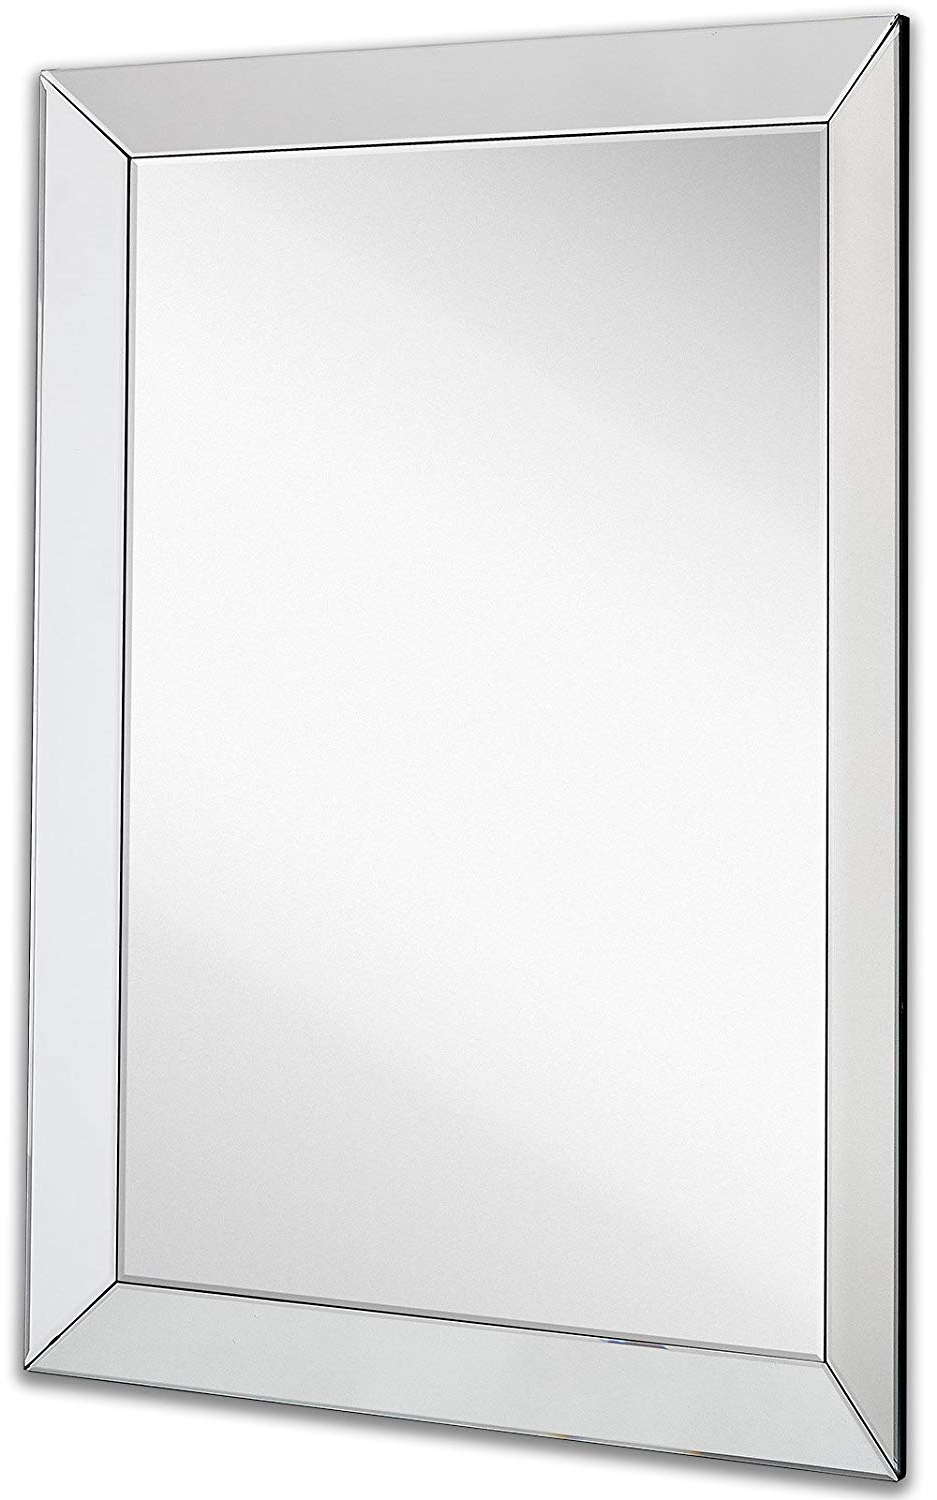 Mirrored Rectangle For Current Large Wall Mirror Without Frame (View 8 of 20)